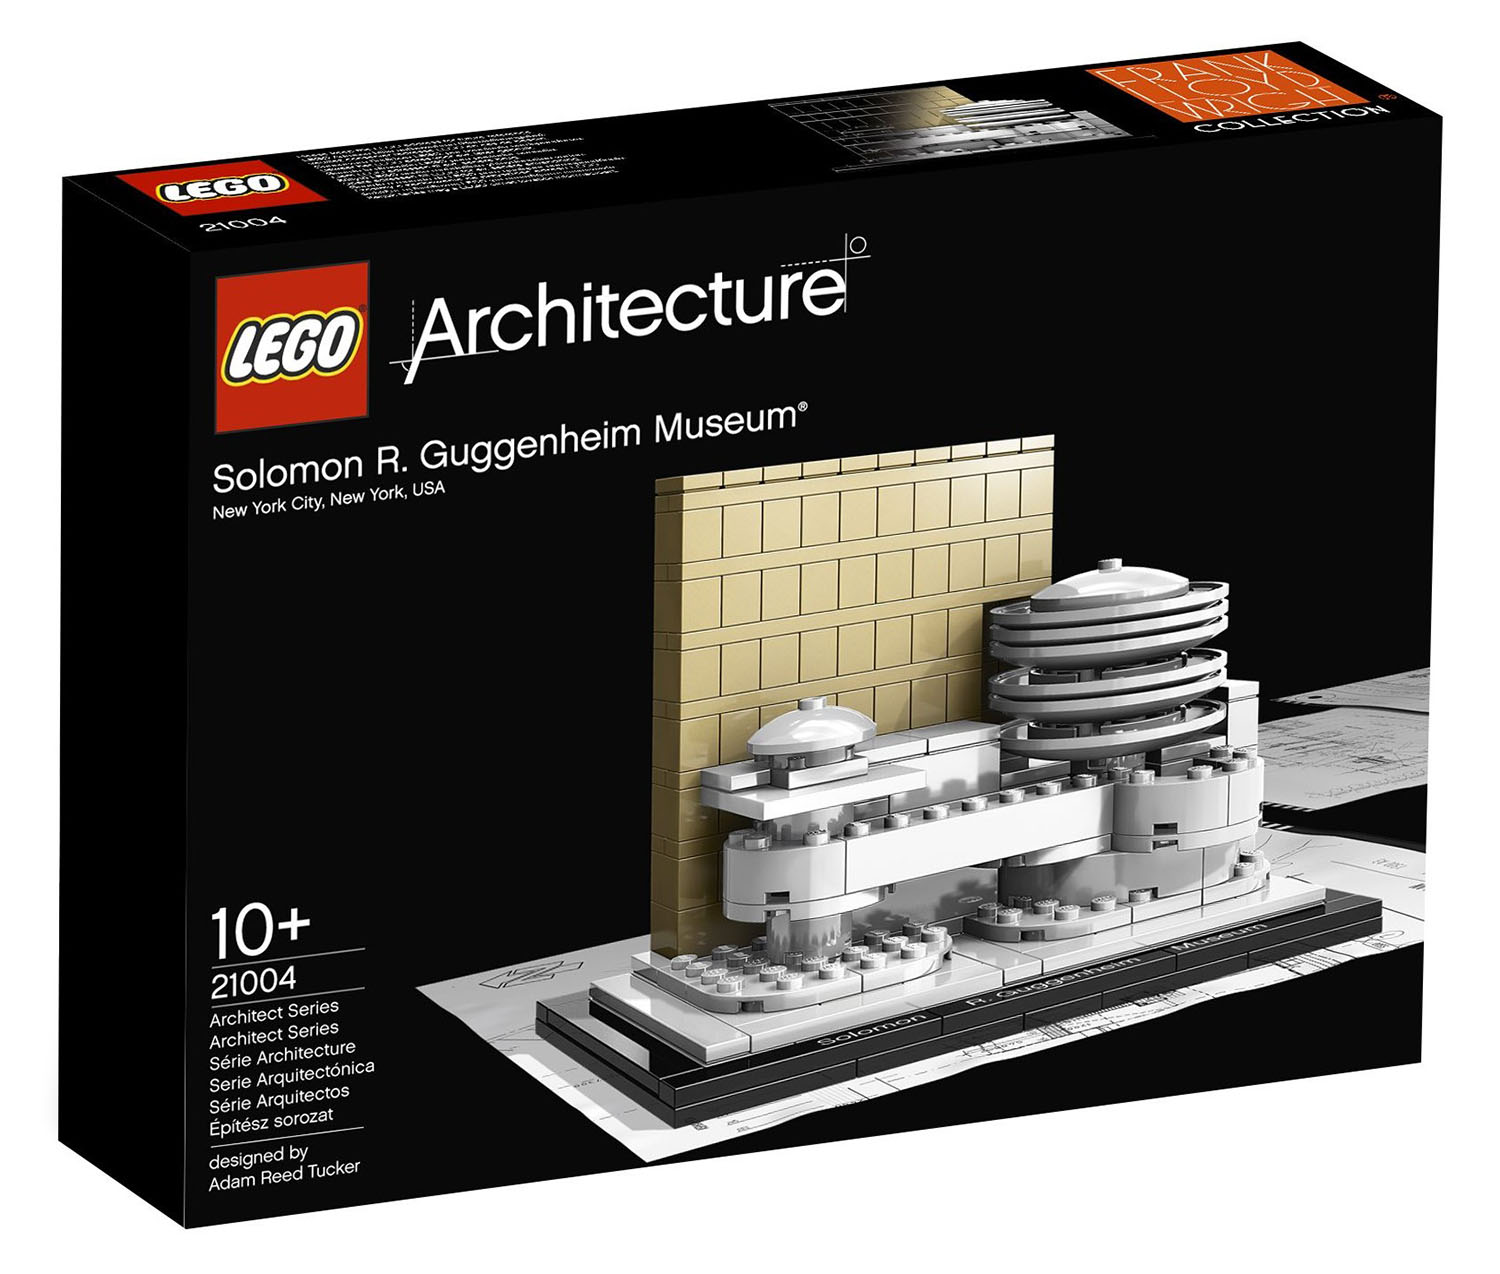 lego architecture 21004 pas cher le mus e solomon r guggenheim. Black Bedroom Furniture Sets. Home Design Ideas